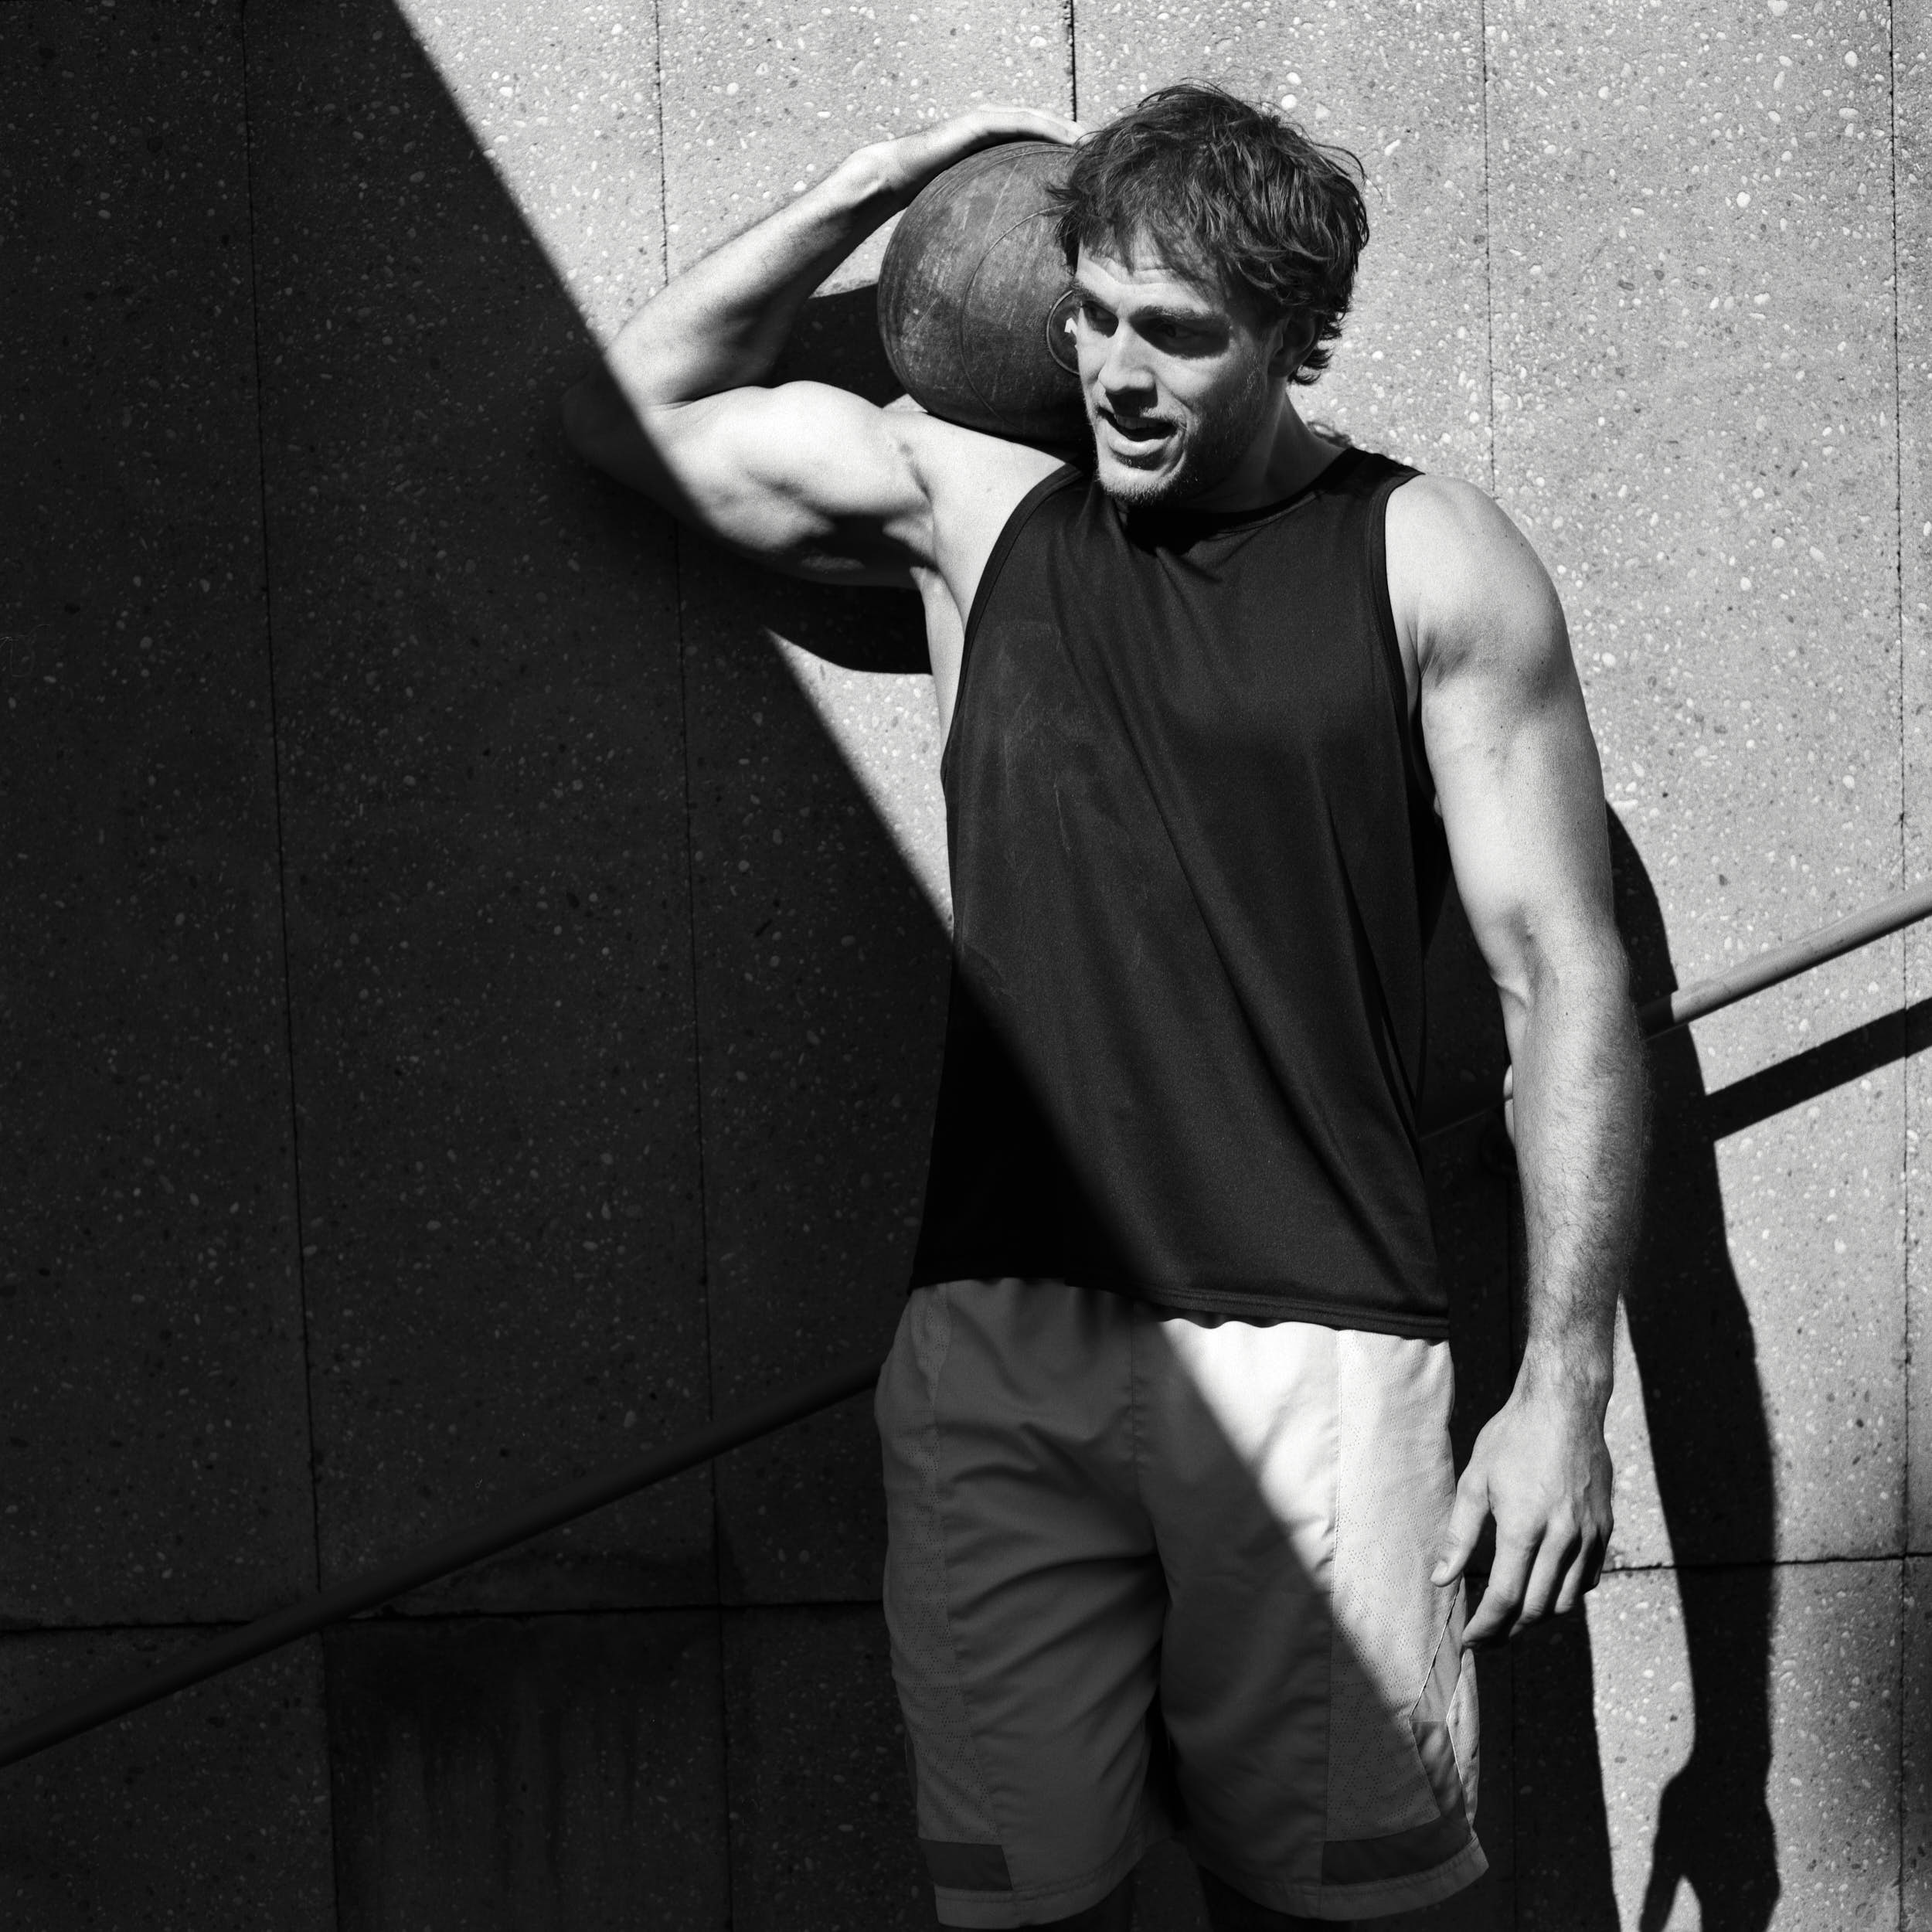 High contrast active lifestyle photography: strong fitness athlete holding a medicine ball in a black and white portrait.